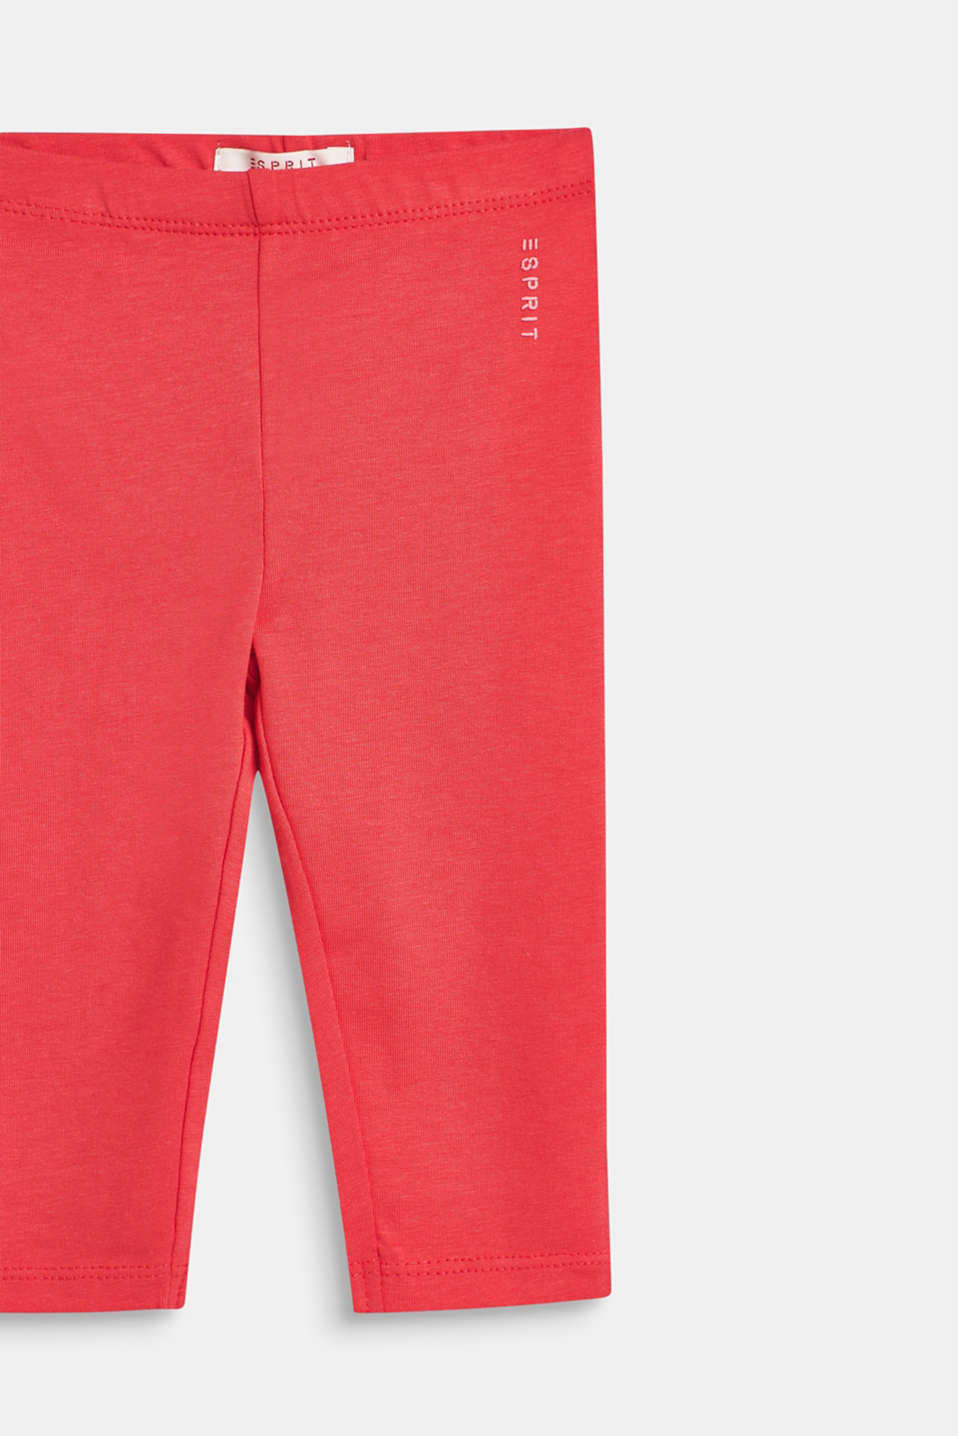 Pants knitted, LCSTRAWBERRY, detail image number 2